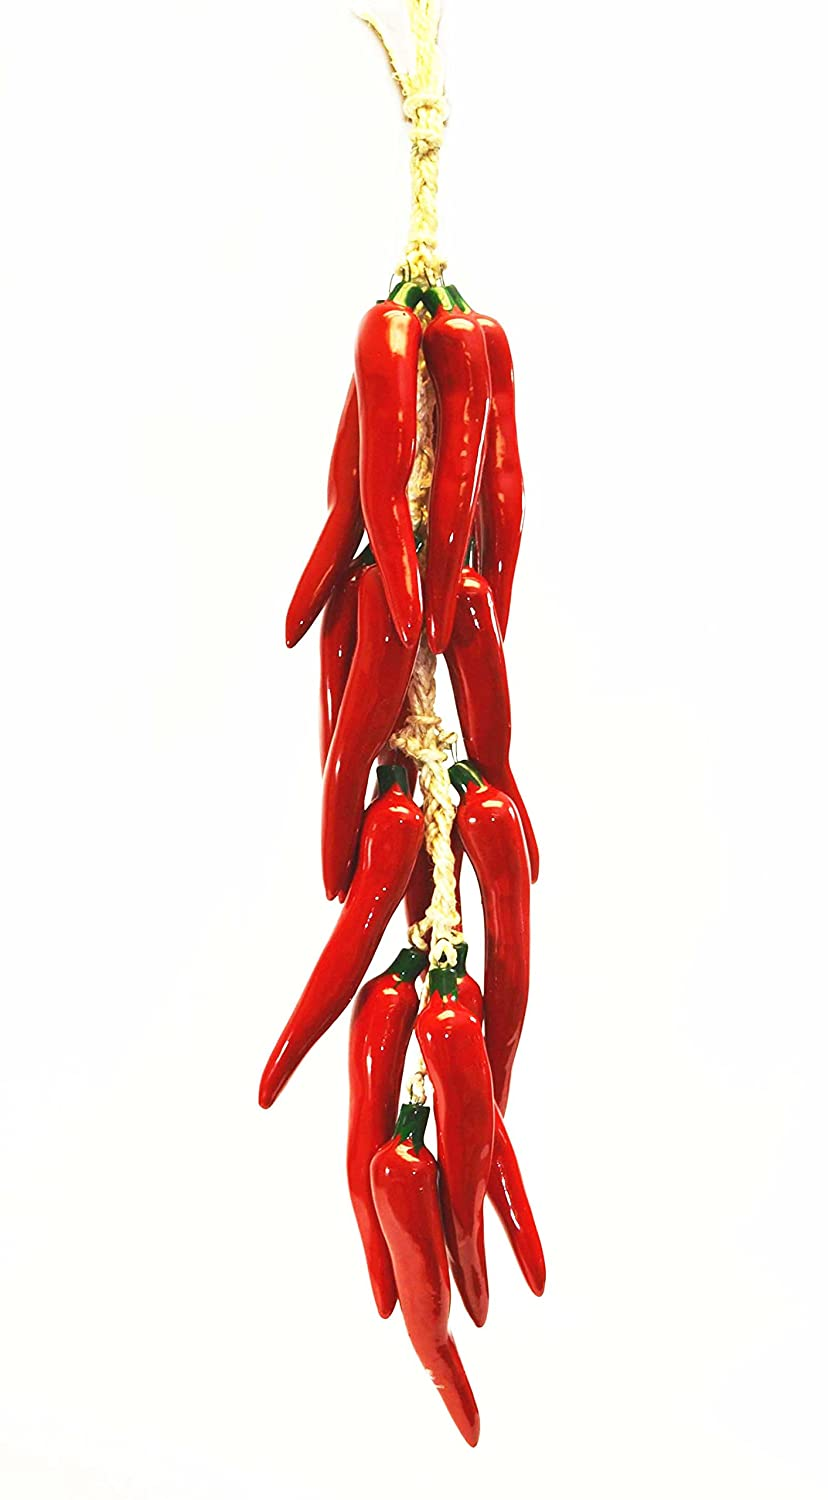 Amazon.com: Large Ristra/String of Ceramic Red Chile Peppers w/ 14-16 Peppers-28.5 Long: Home & Kitchen